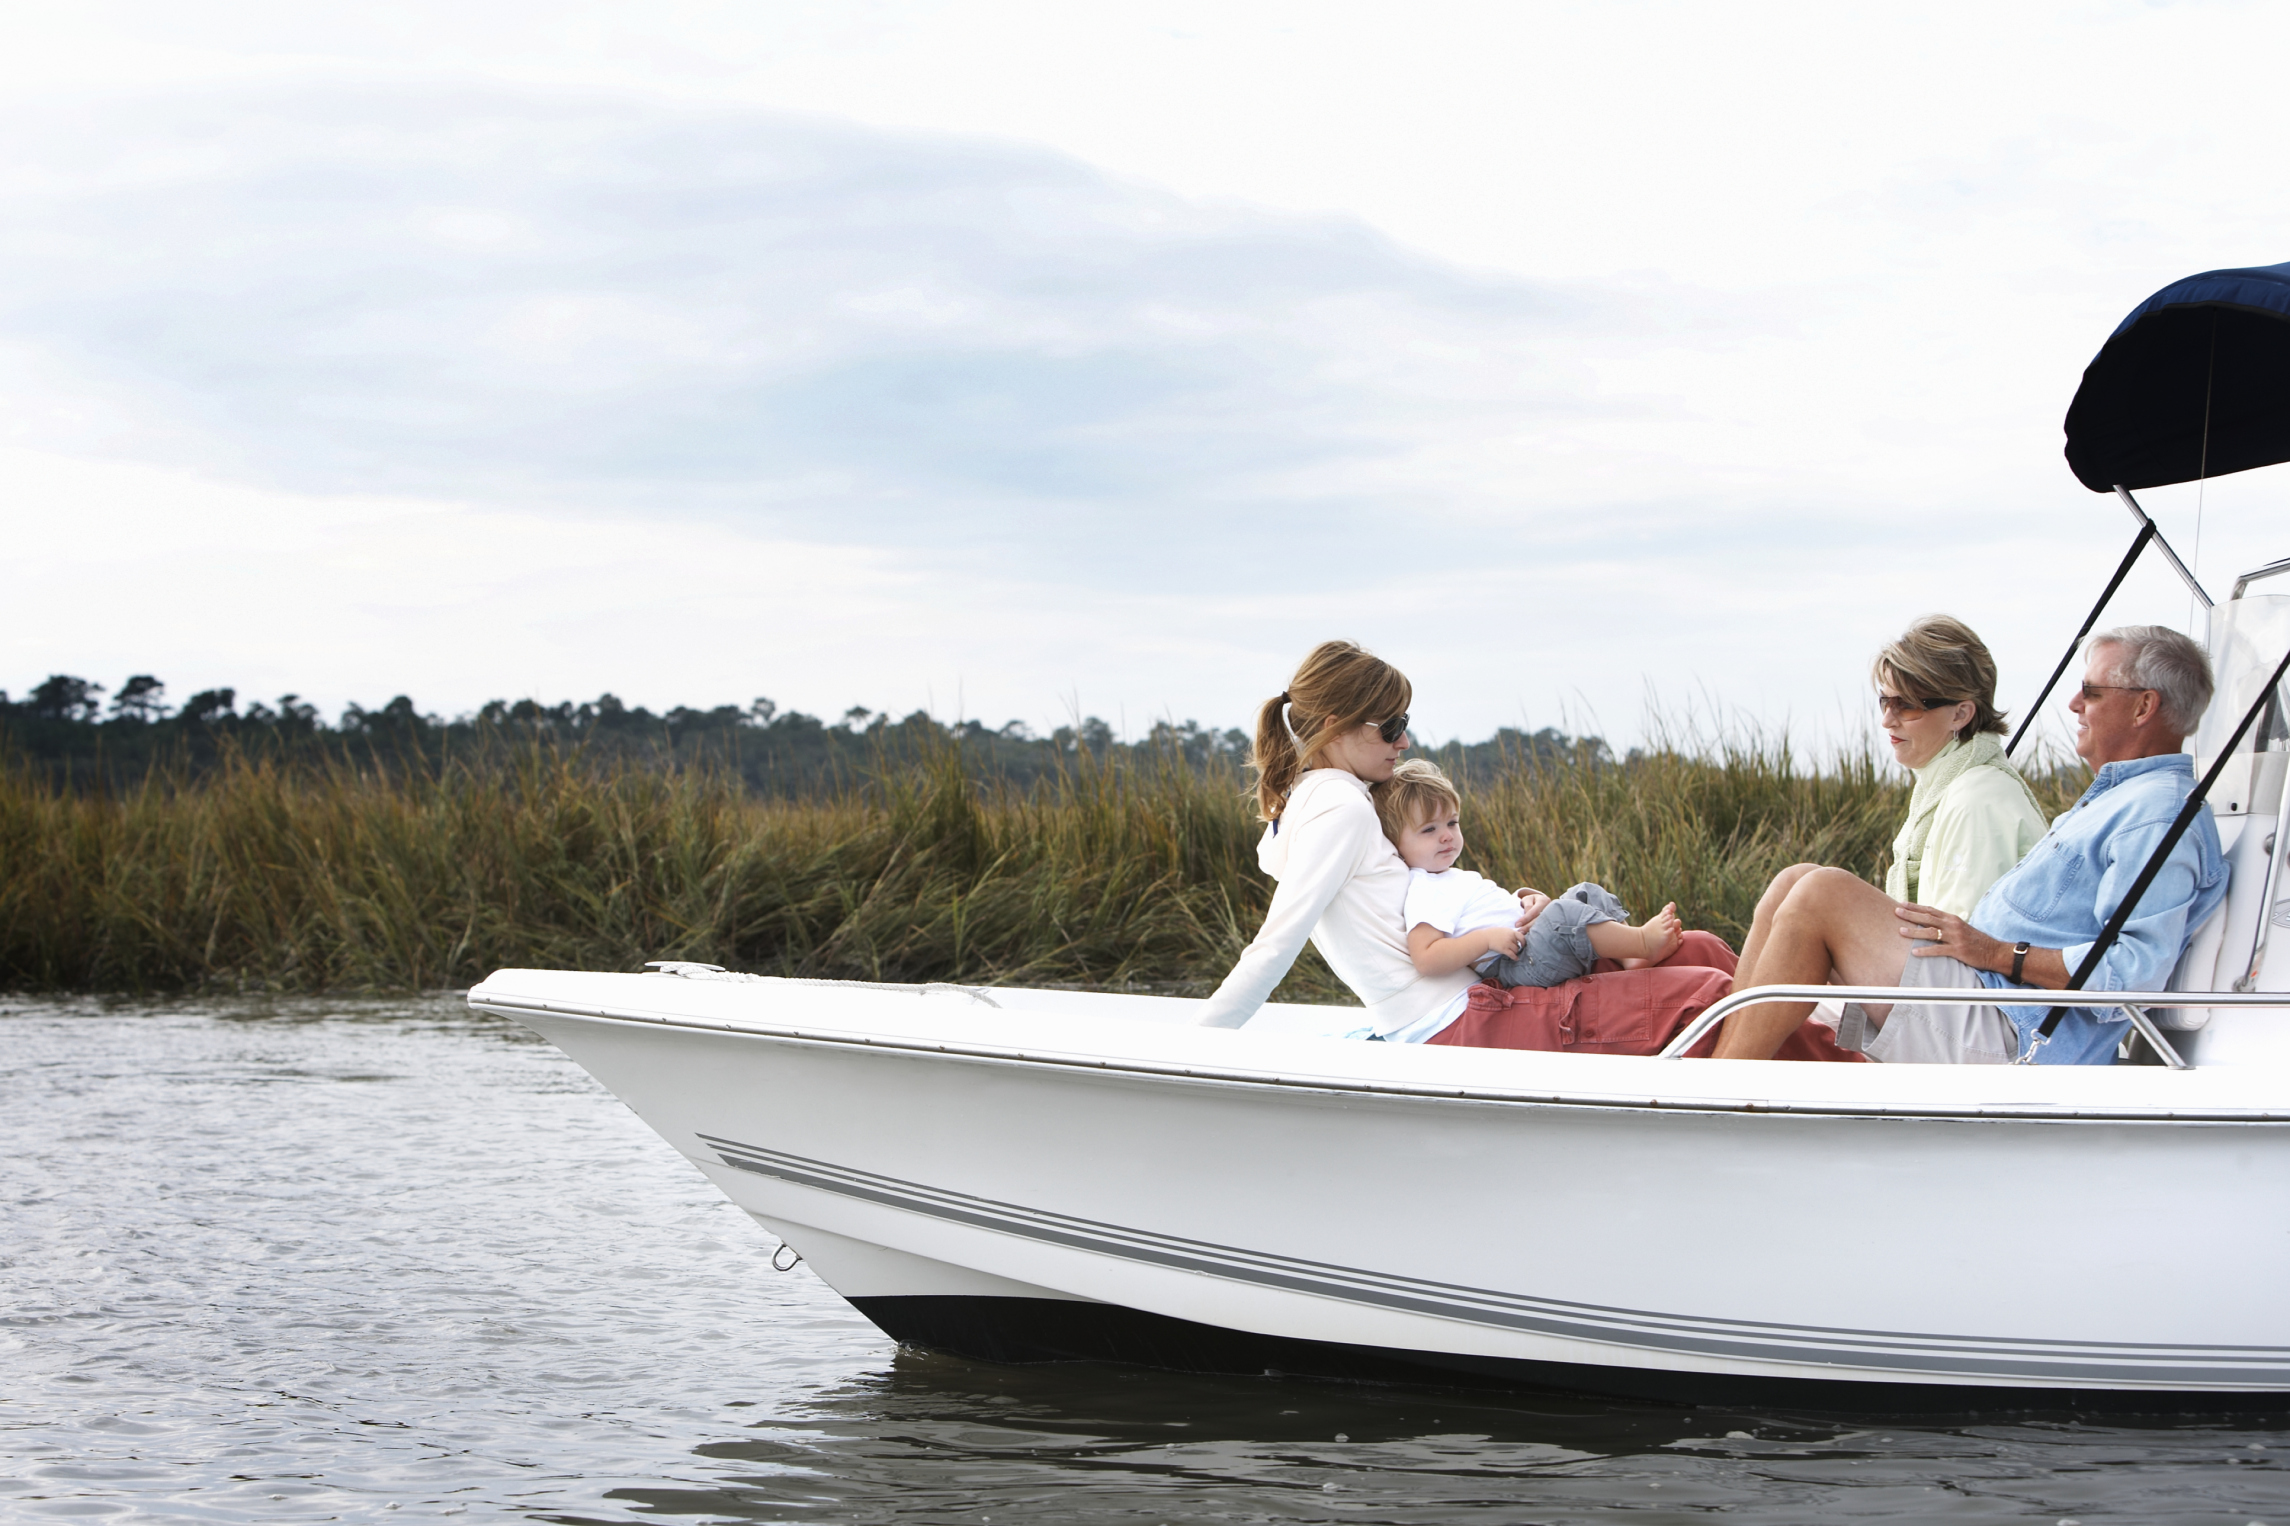 How To Determine The Passenger Capacity Of A Boat Getaway Usa